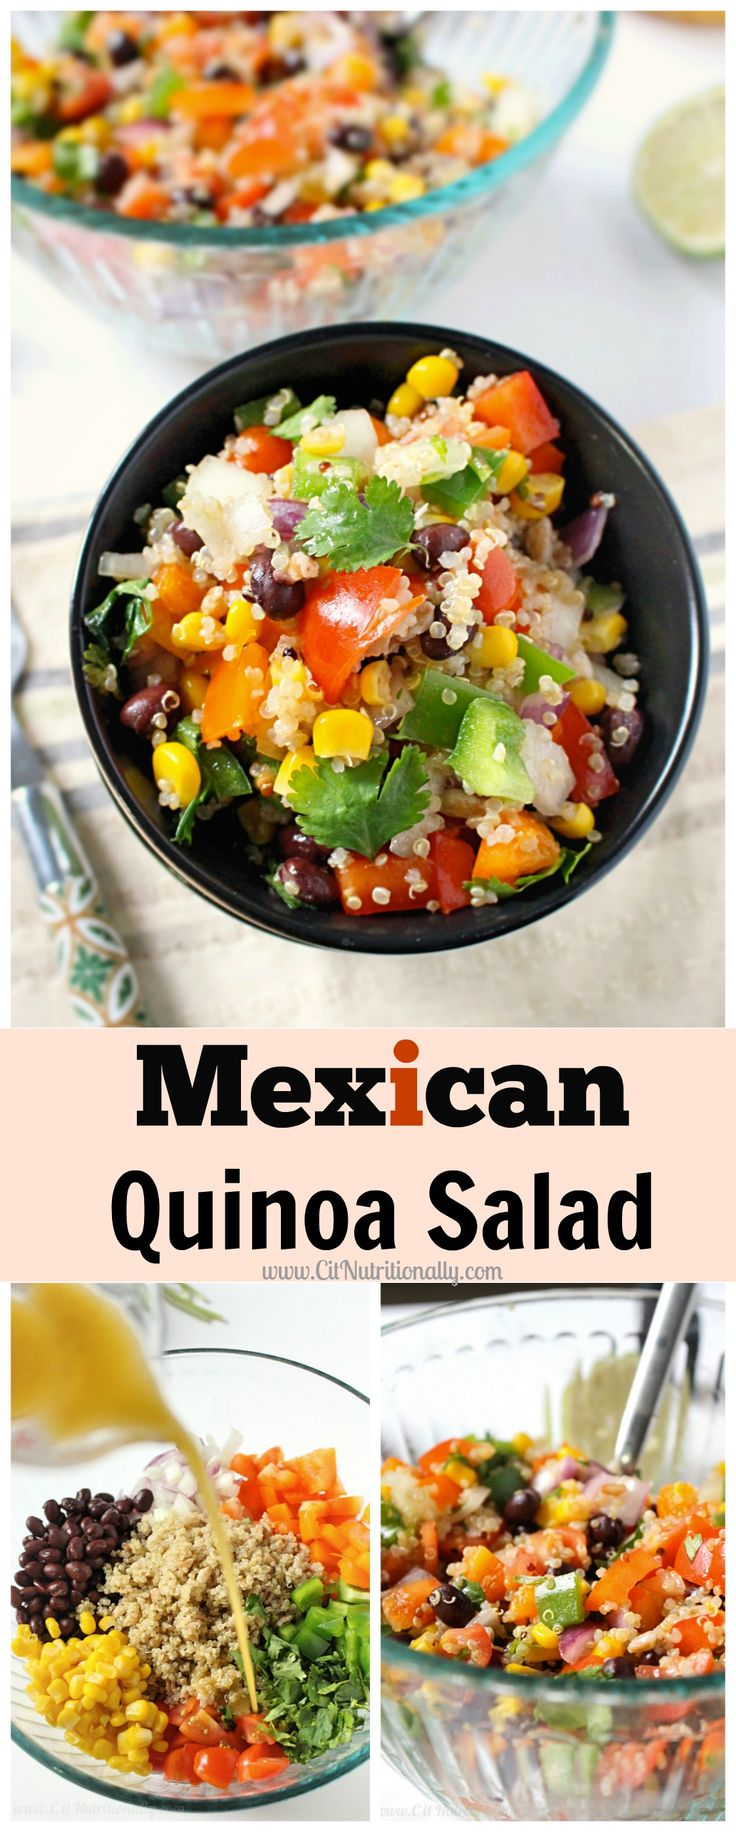 25+ best ideas about Mexican Quinoa Salad on Pinterest ...